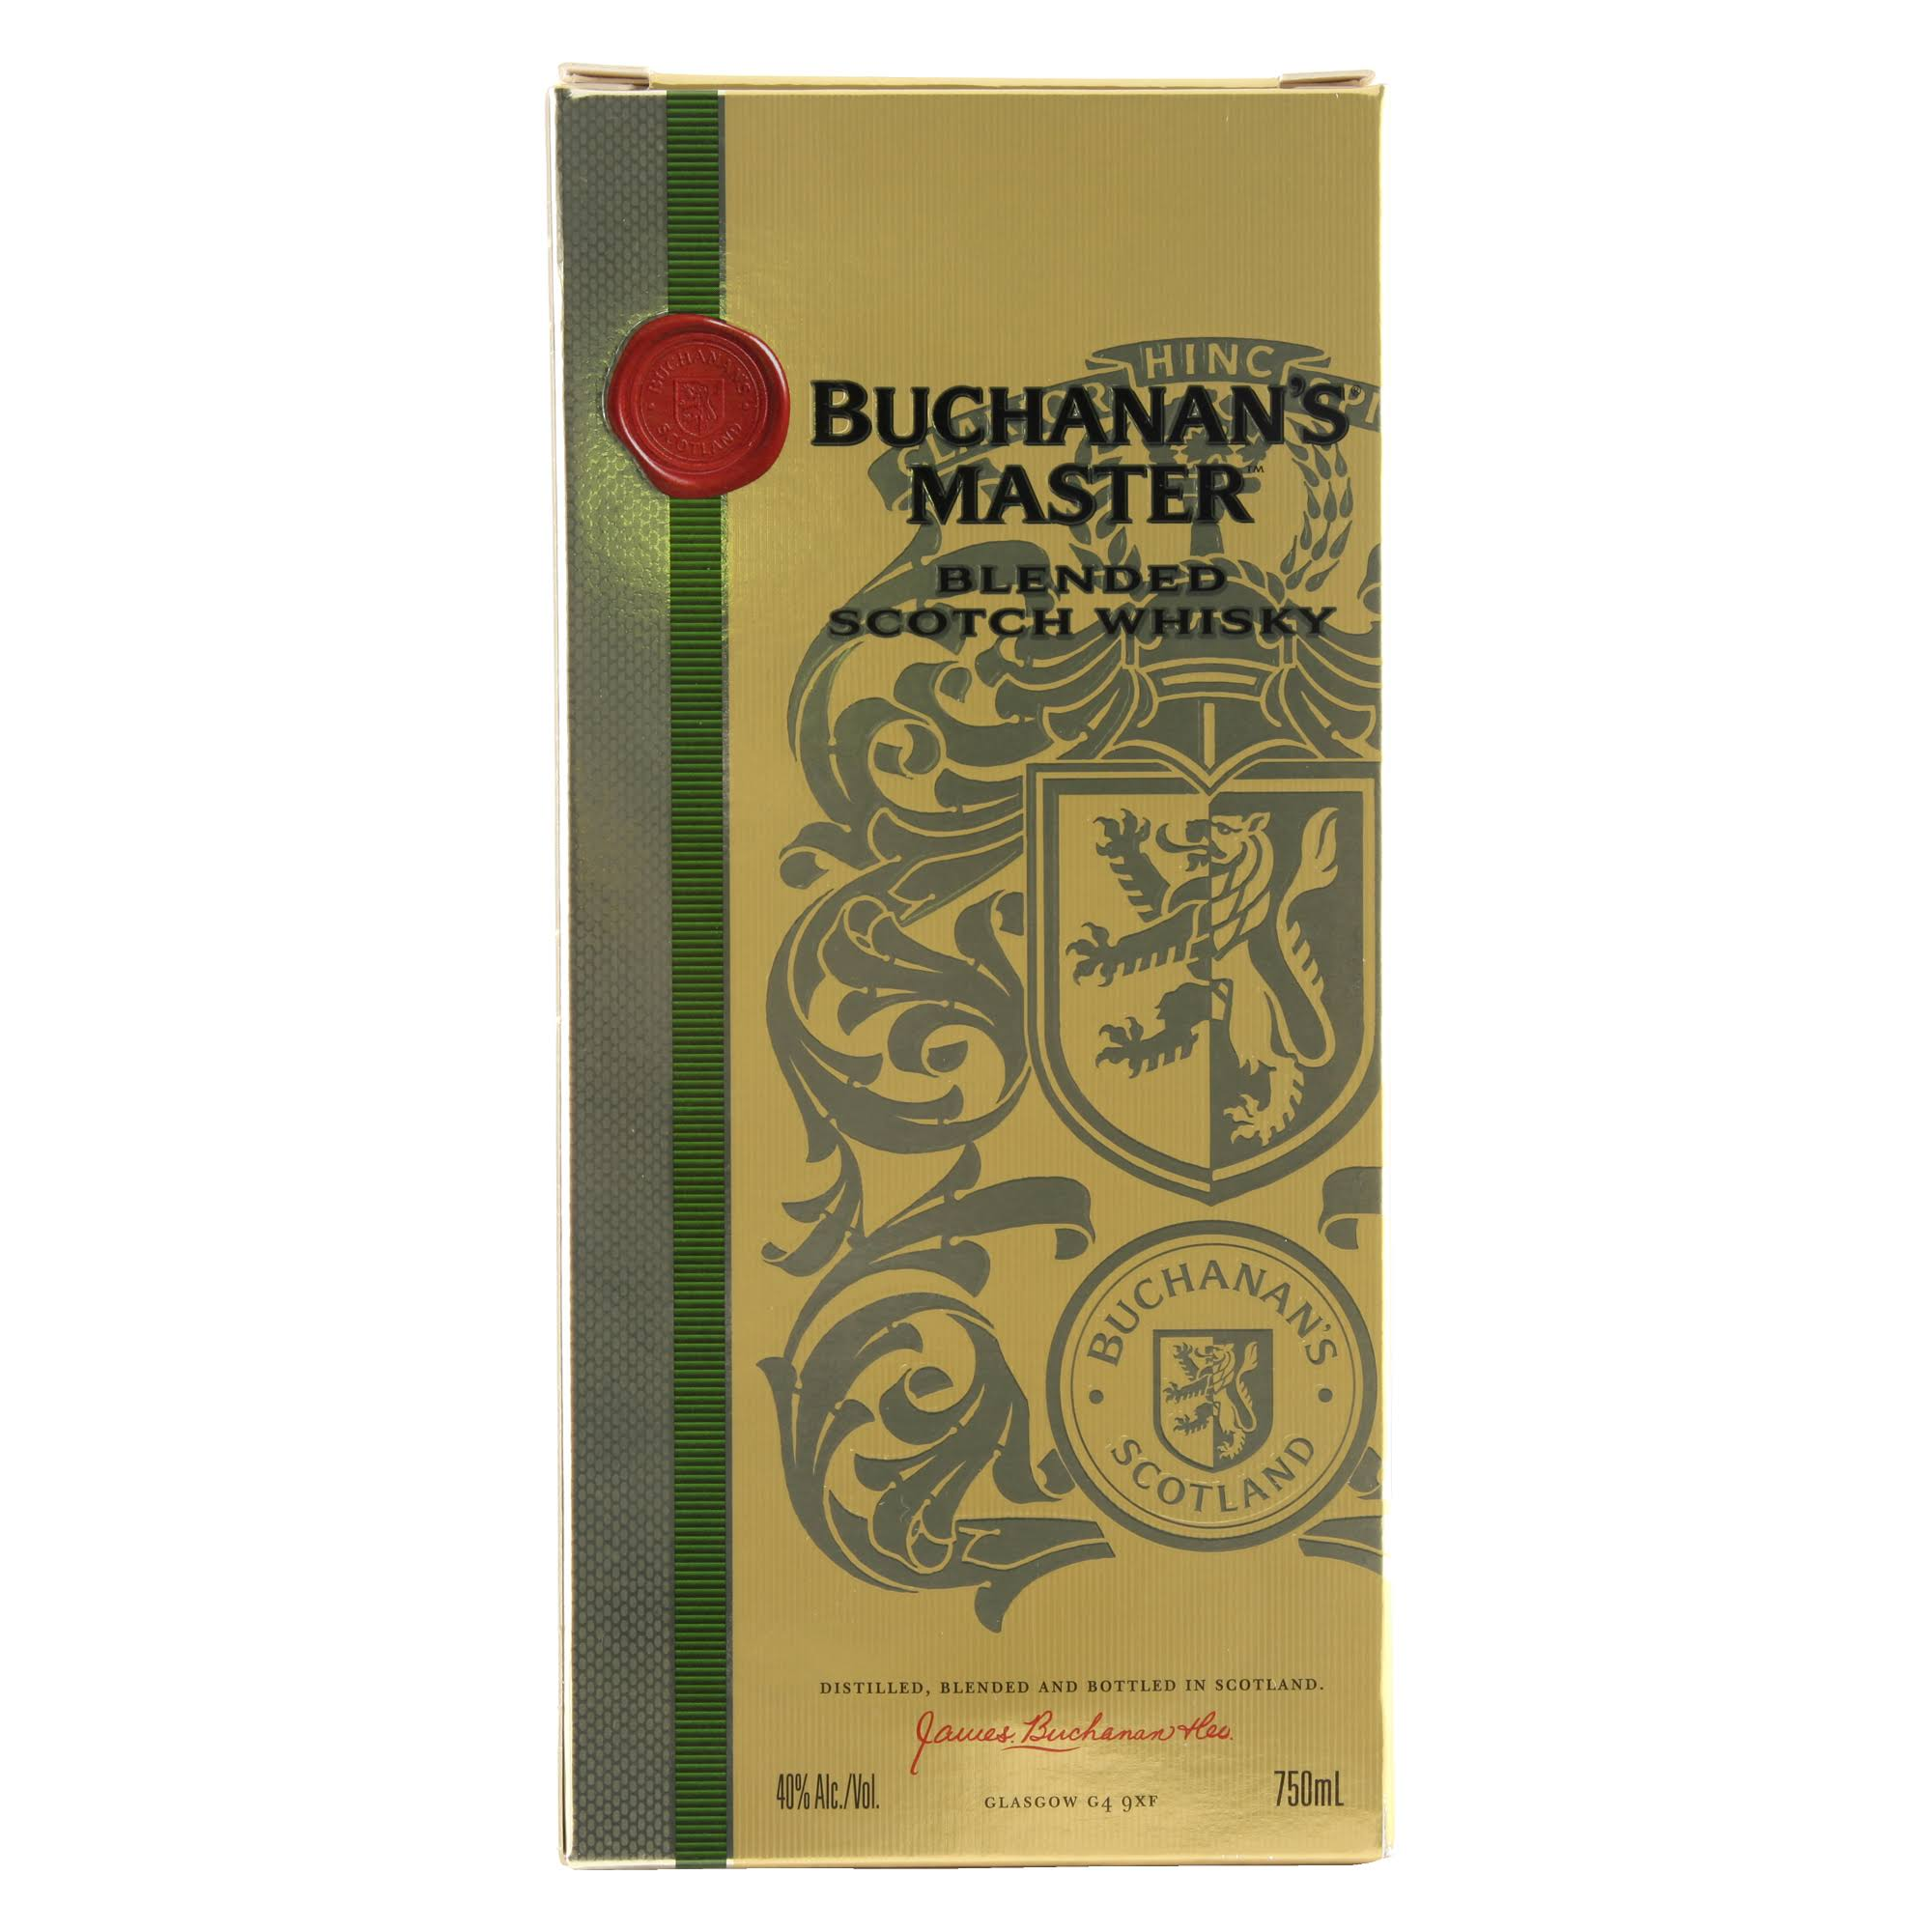 Buchanans Buchanan's Master Whisky Blended Scotch